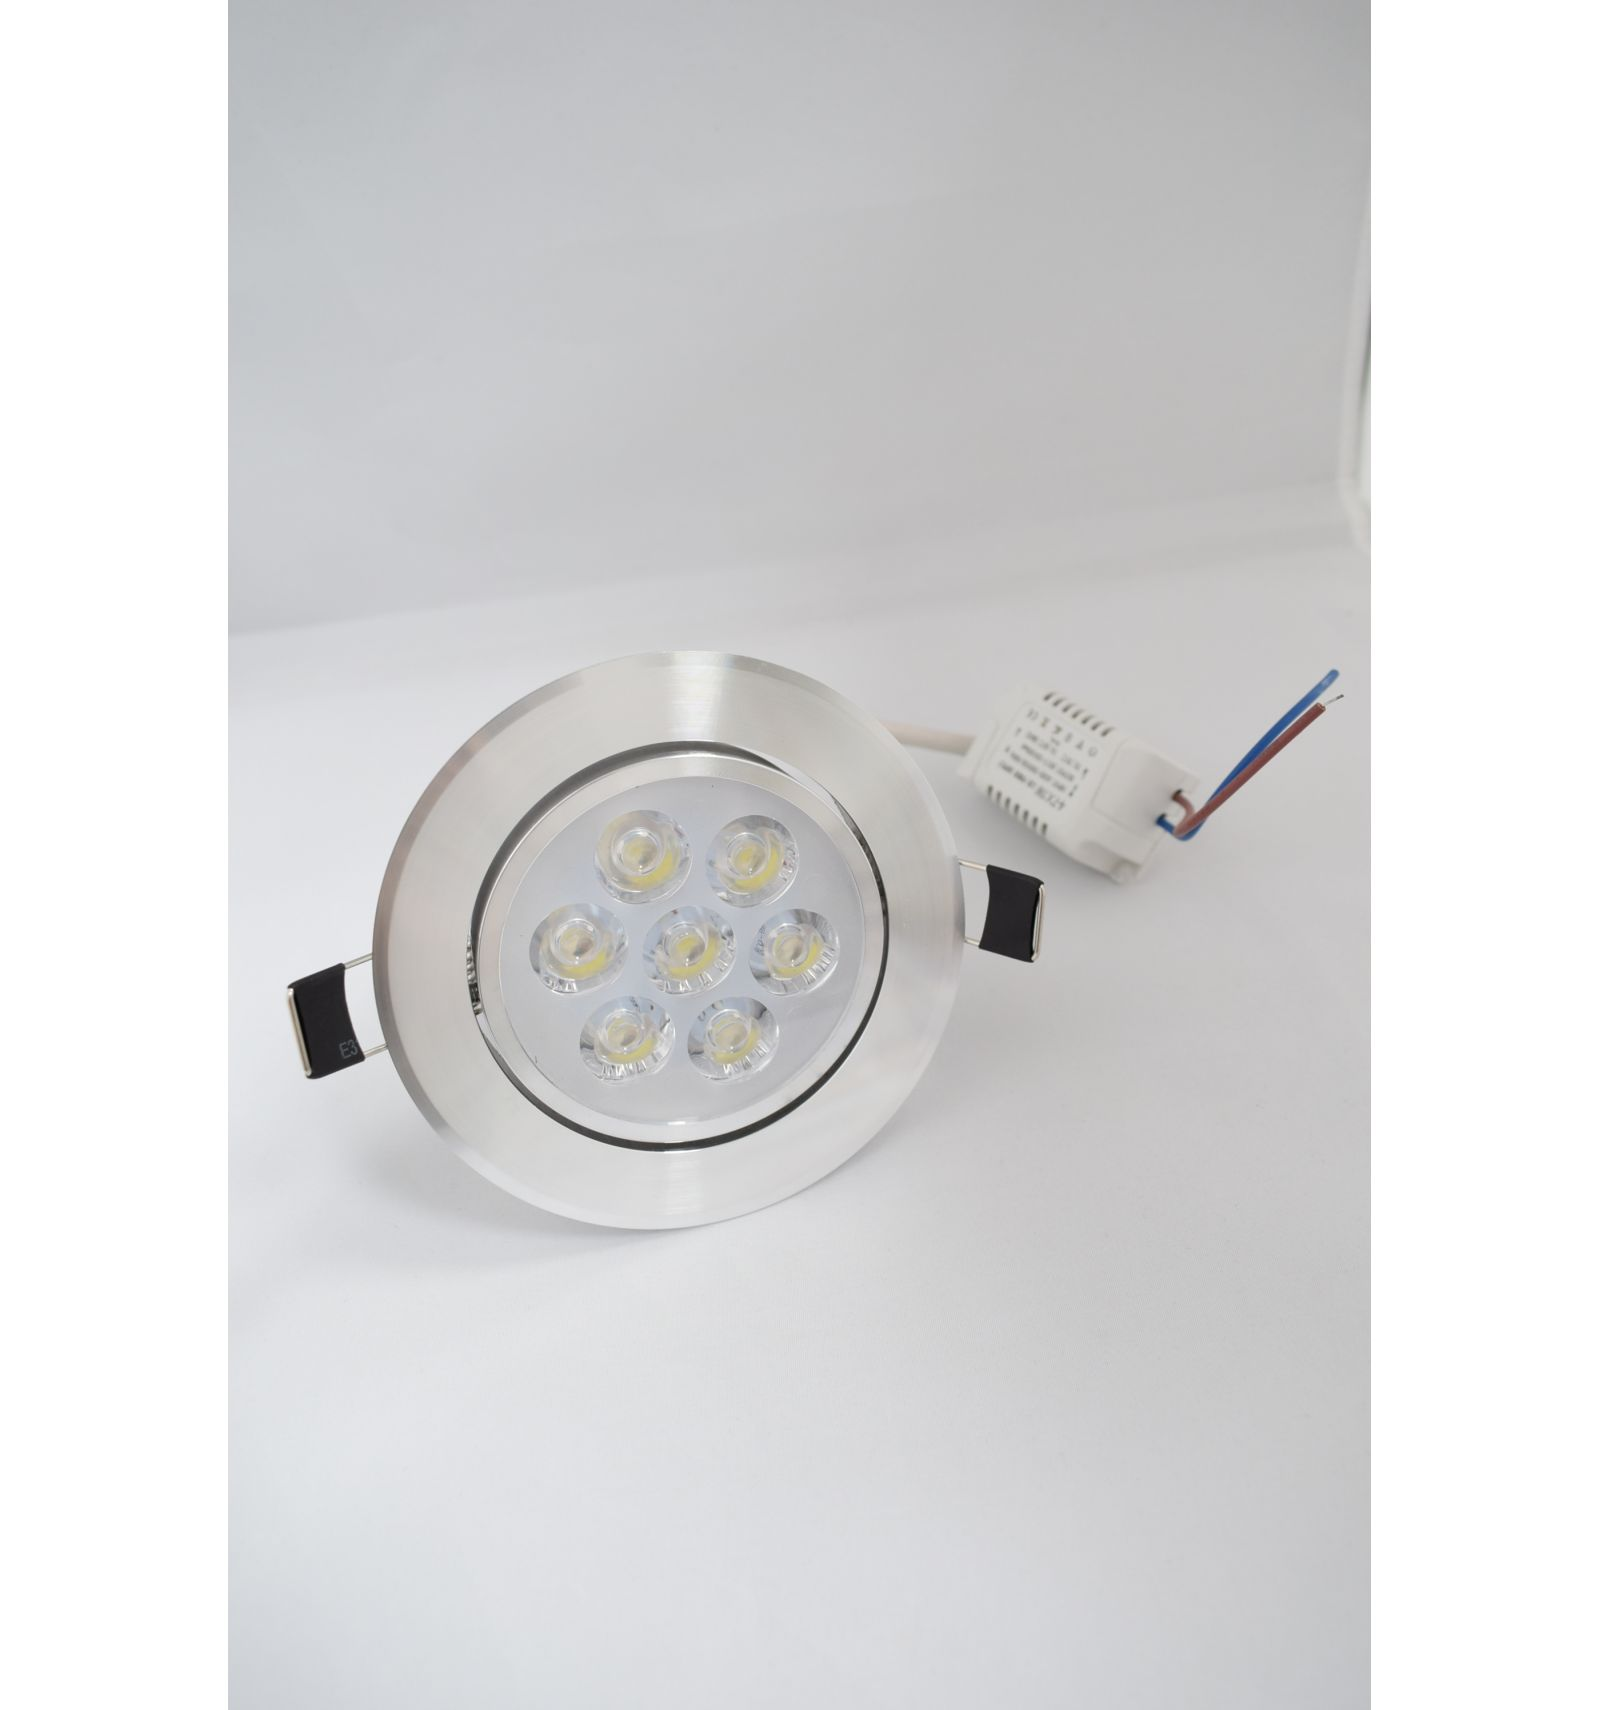 Spot led incastrabil 7w 230v for Lampade led 220v